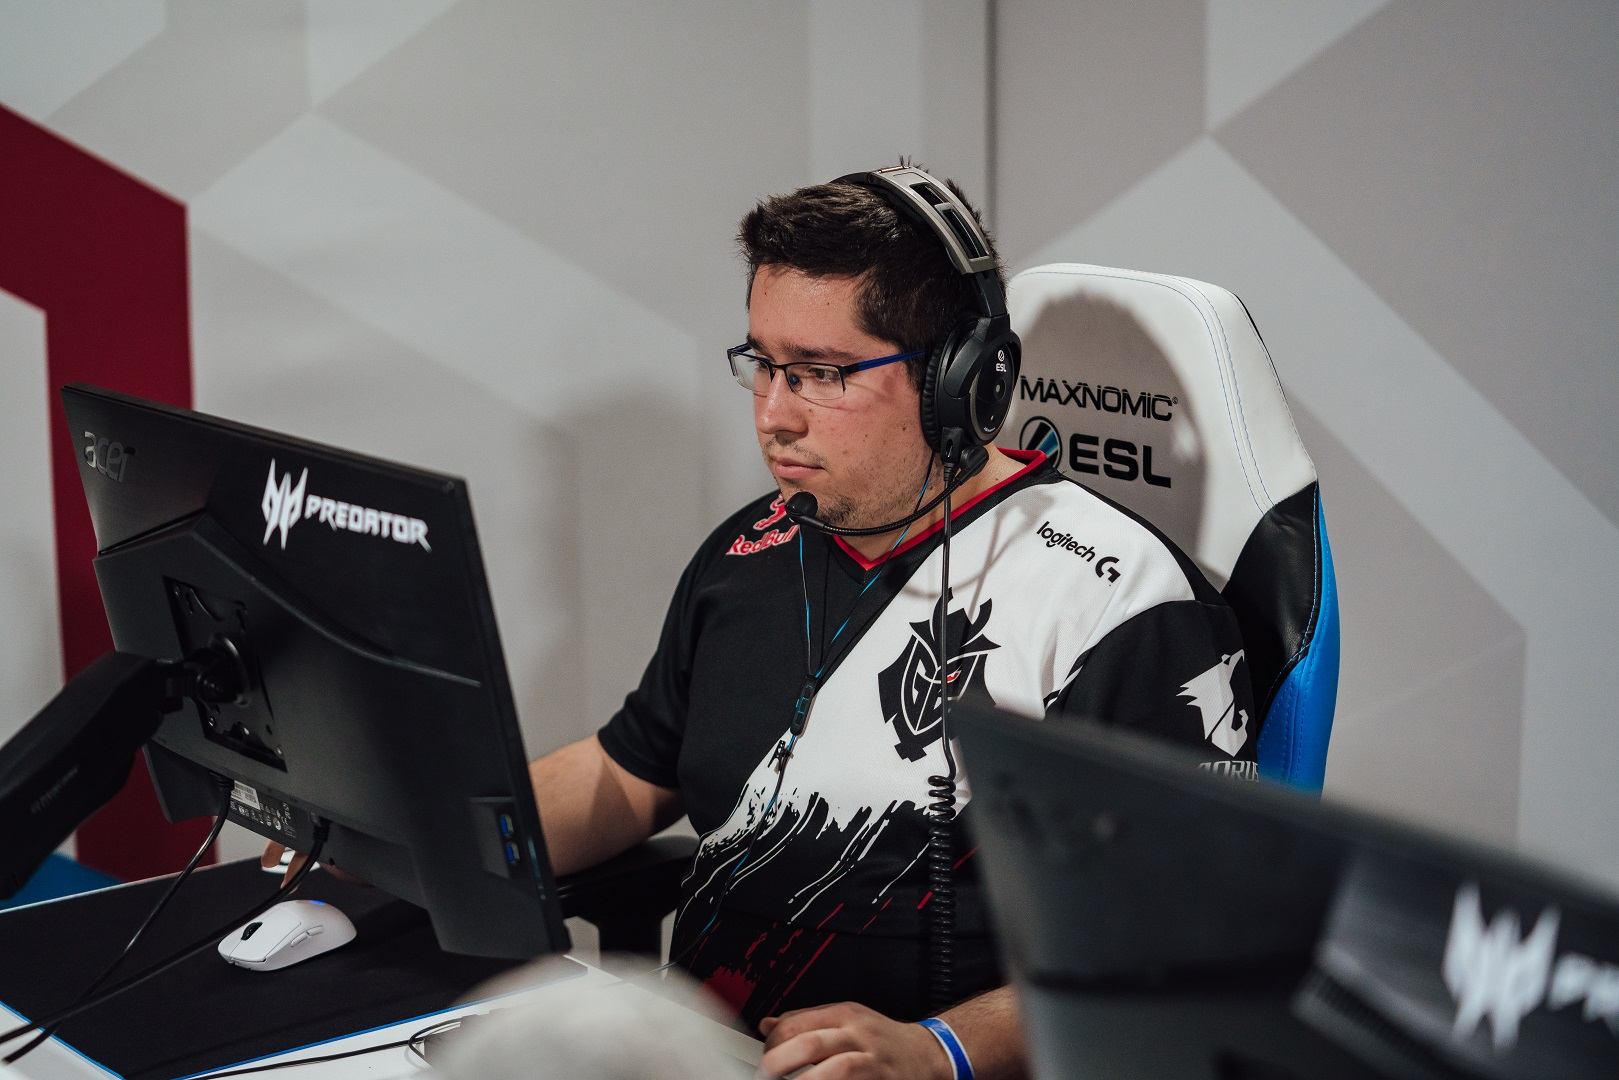 Sirboss playing for G2 Esports at Six Invitational 2020